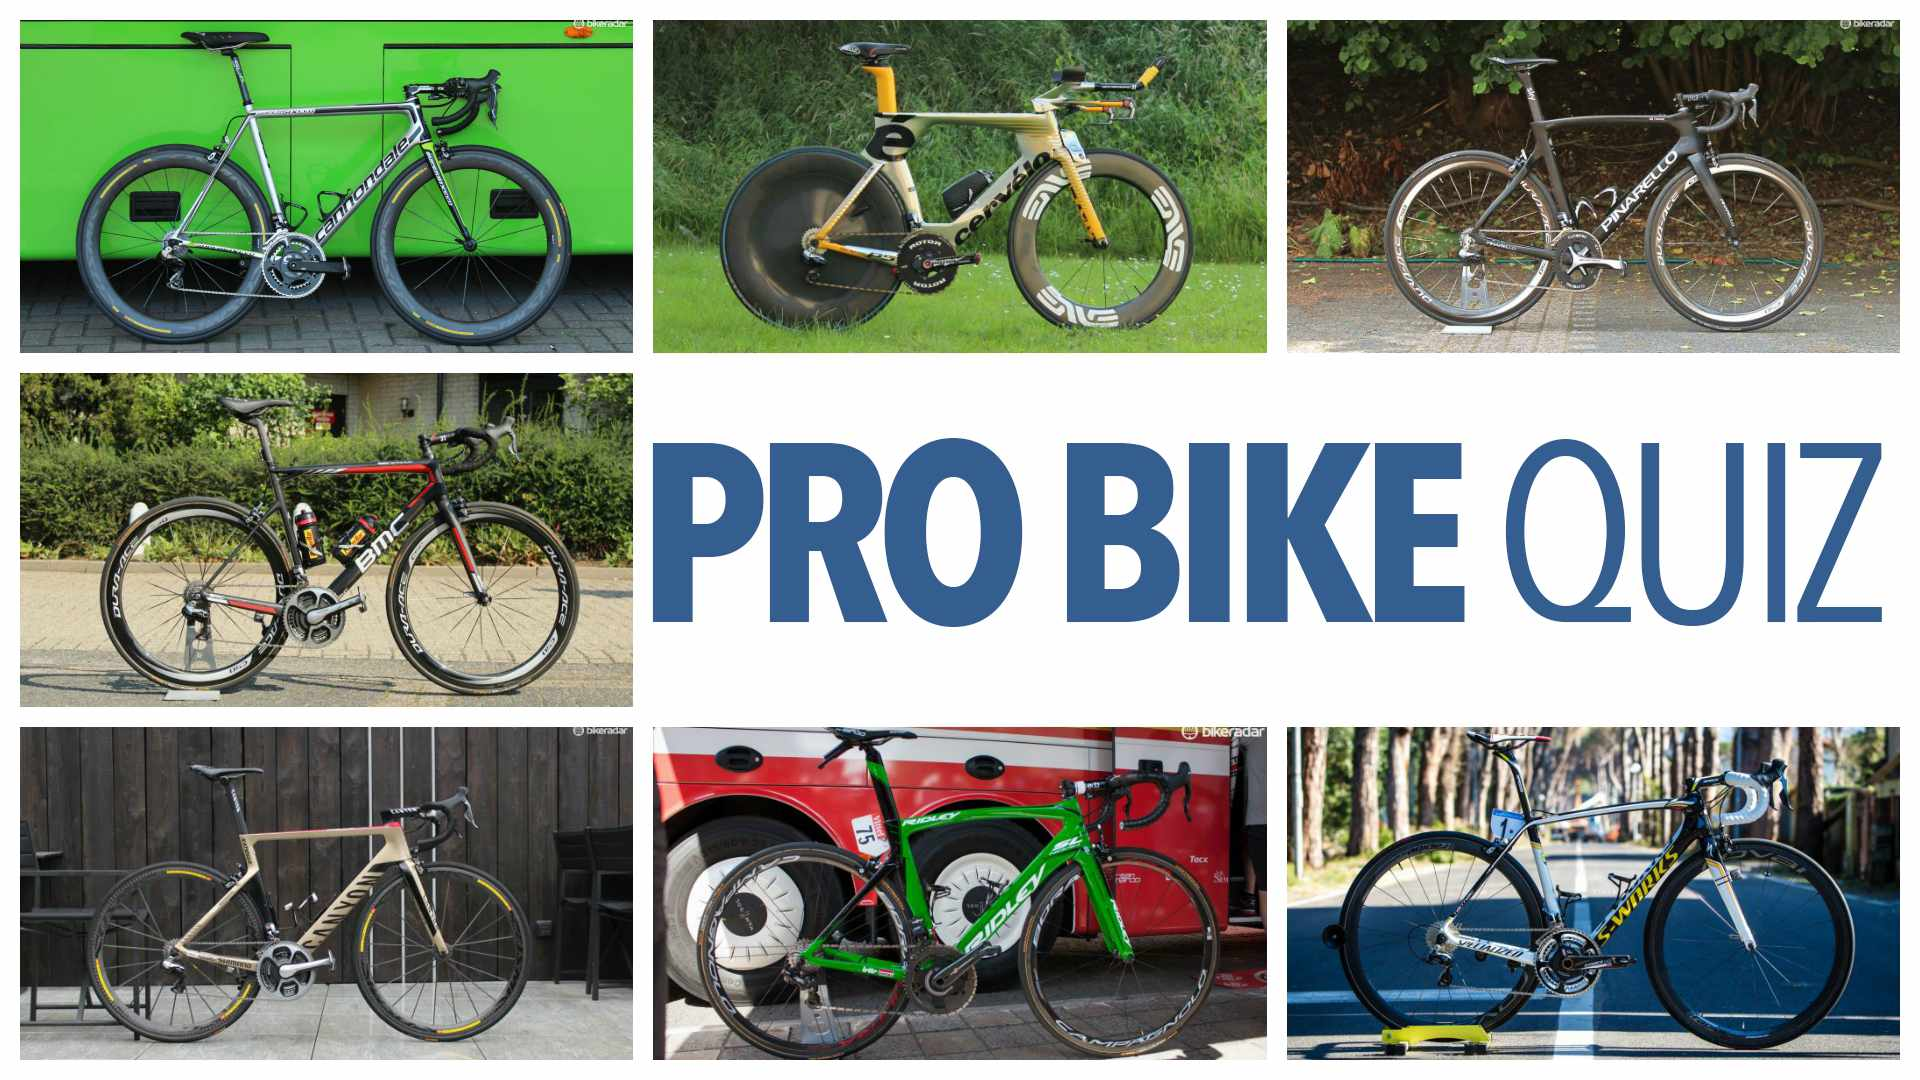 How many pro bikes can you identify?